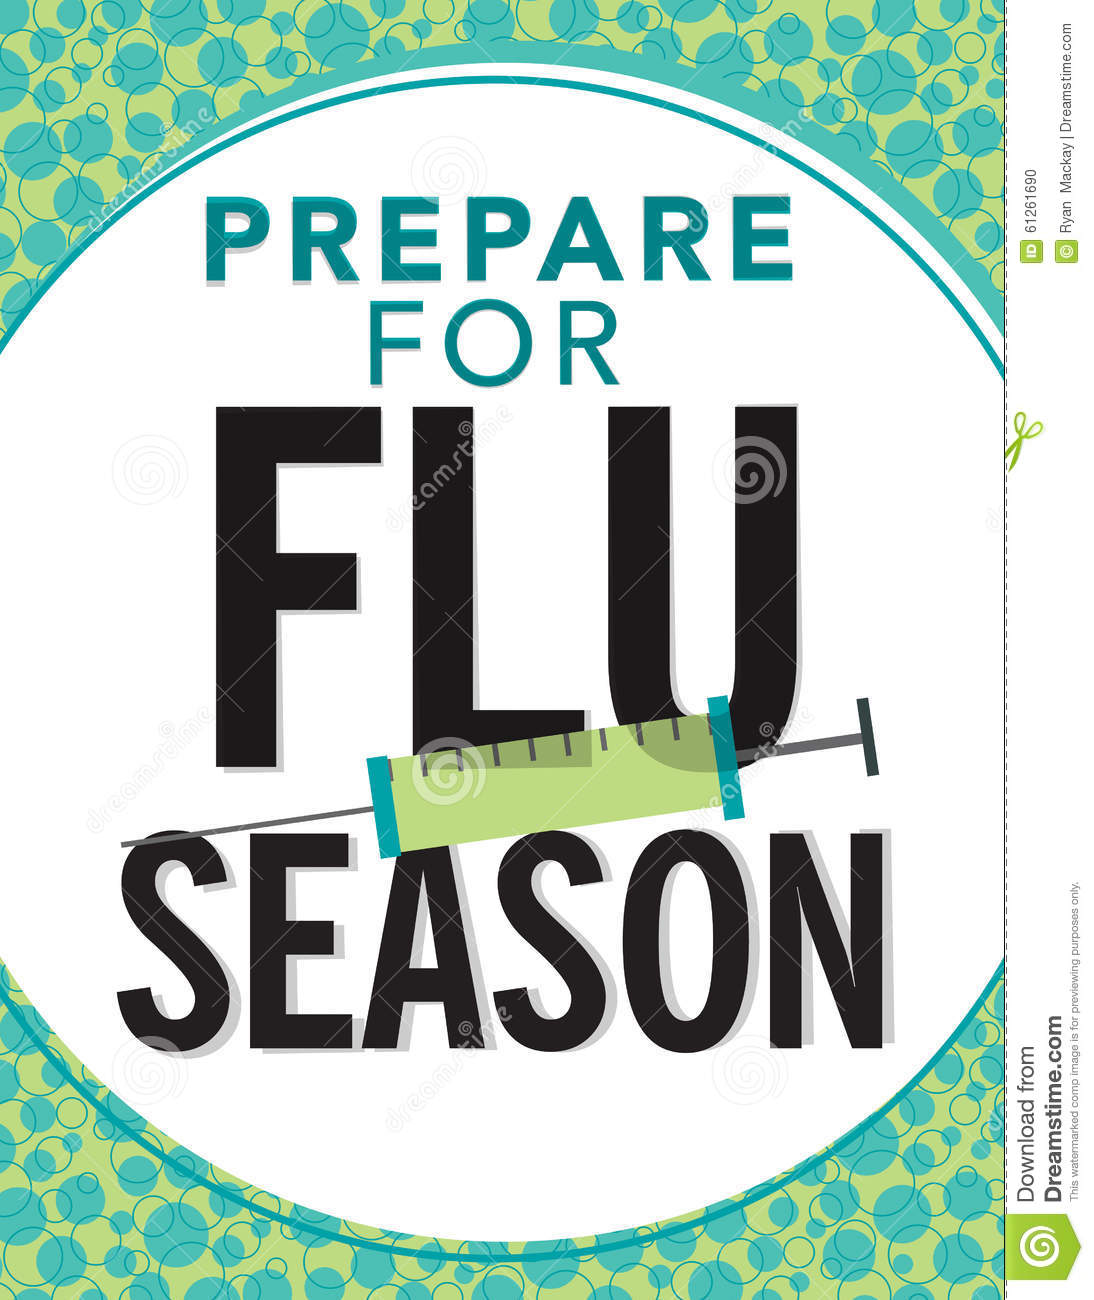 healthcare-poster-health-care-syringe-prepare-flu-season-61261690.jpg